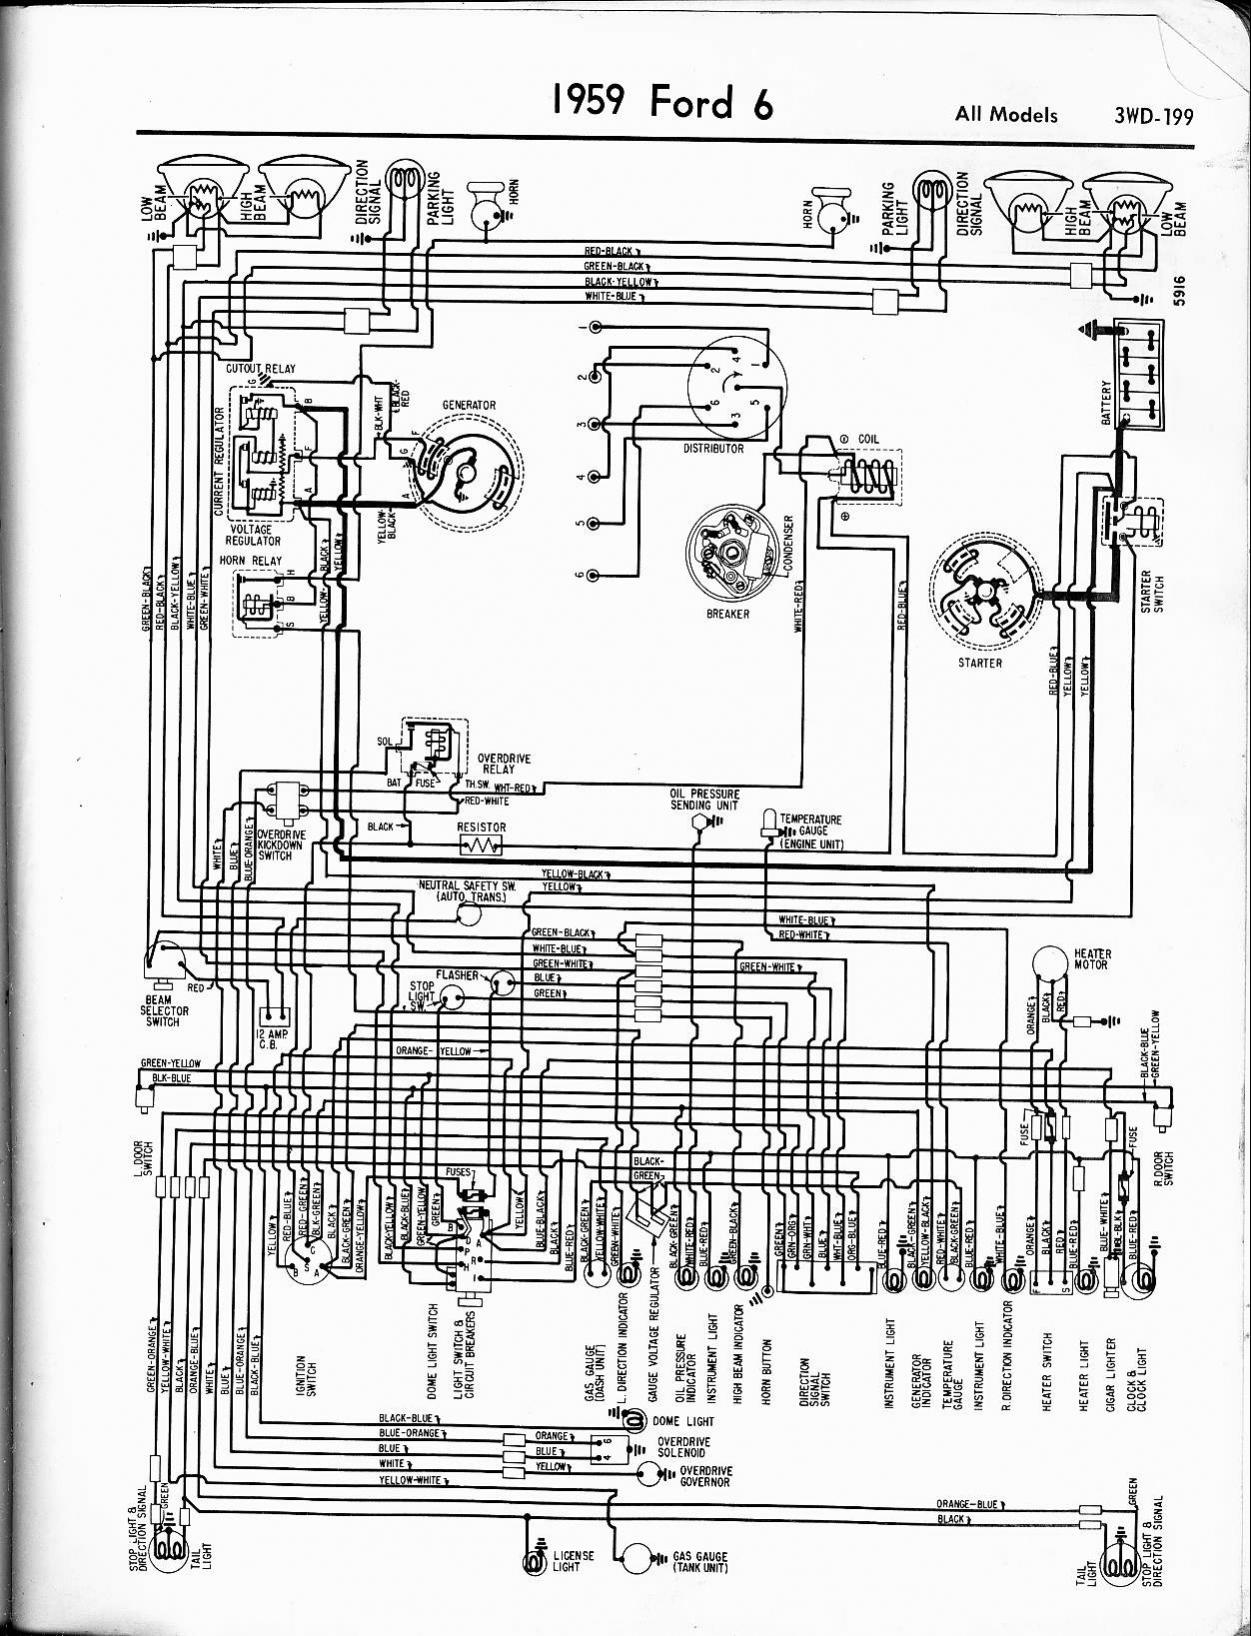 1960 ford f100 wiring wiring diagram long 1960 ford truck wiring harness wiring diagram expert 1960 ford f100 wiring harness 1960 ford f100 wiring